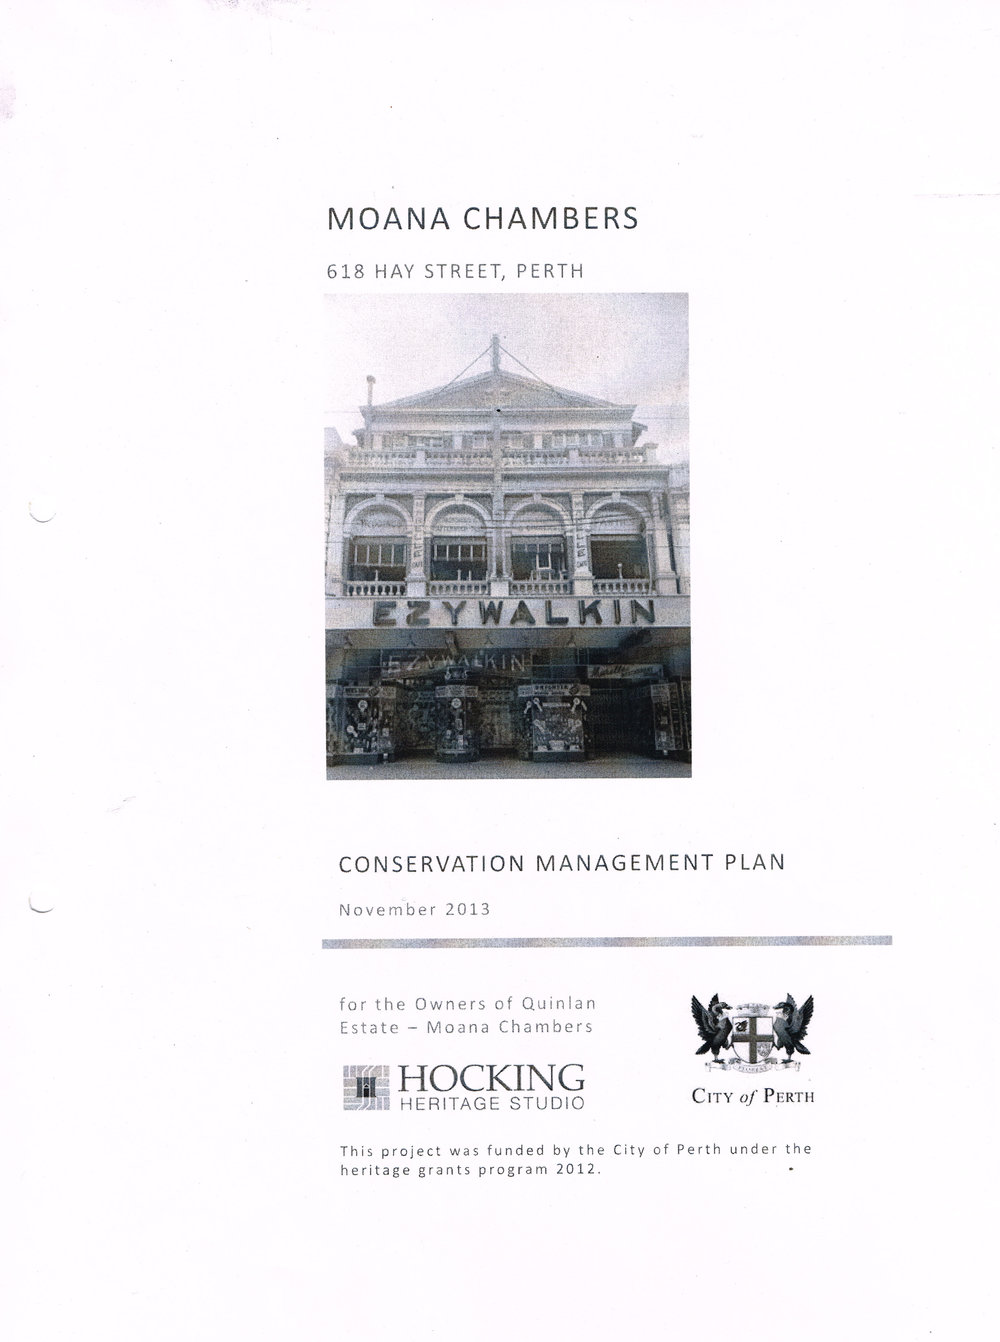 Moana Chambers 618 Hay Street, Perth : Conservation Management Plan November 2013  City of Perth and Hocking Heritage Studio